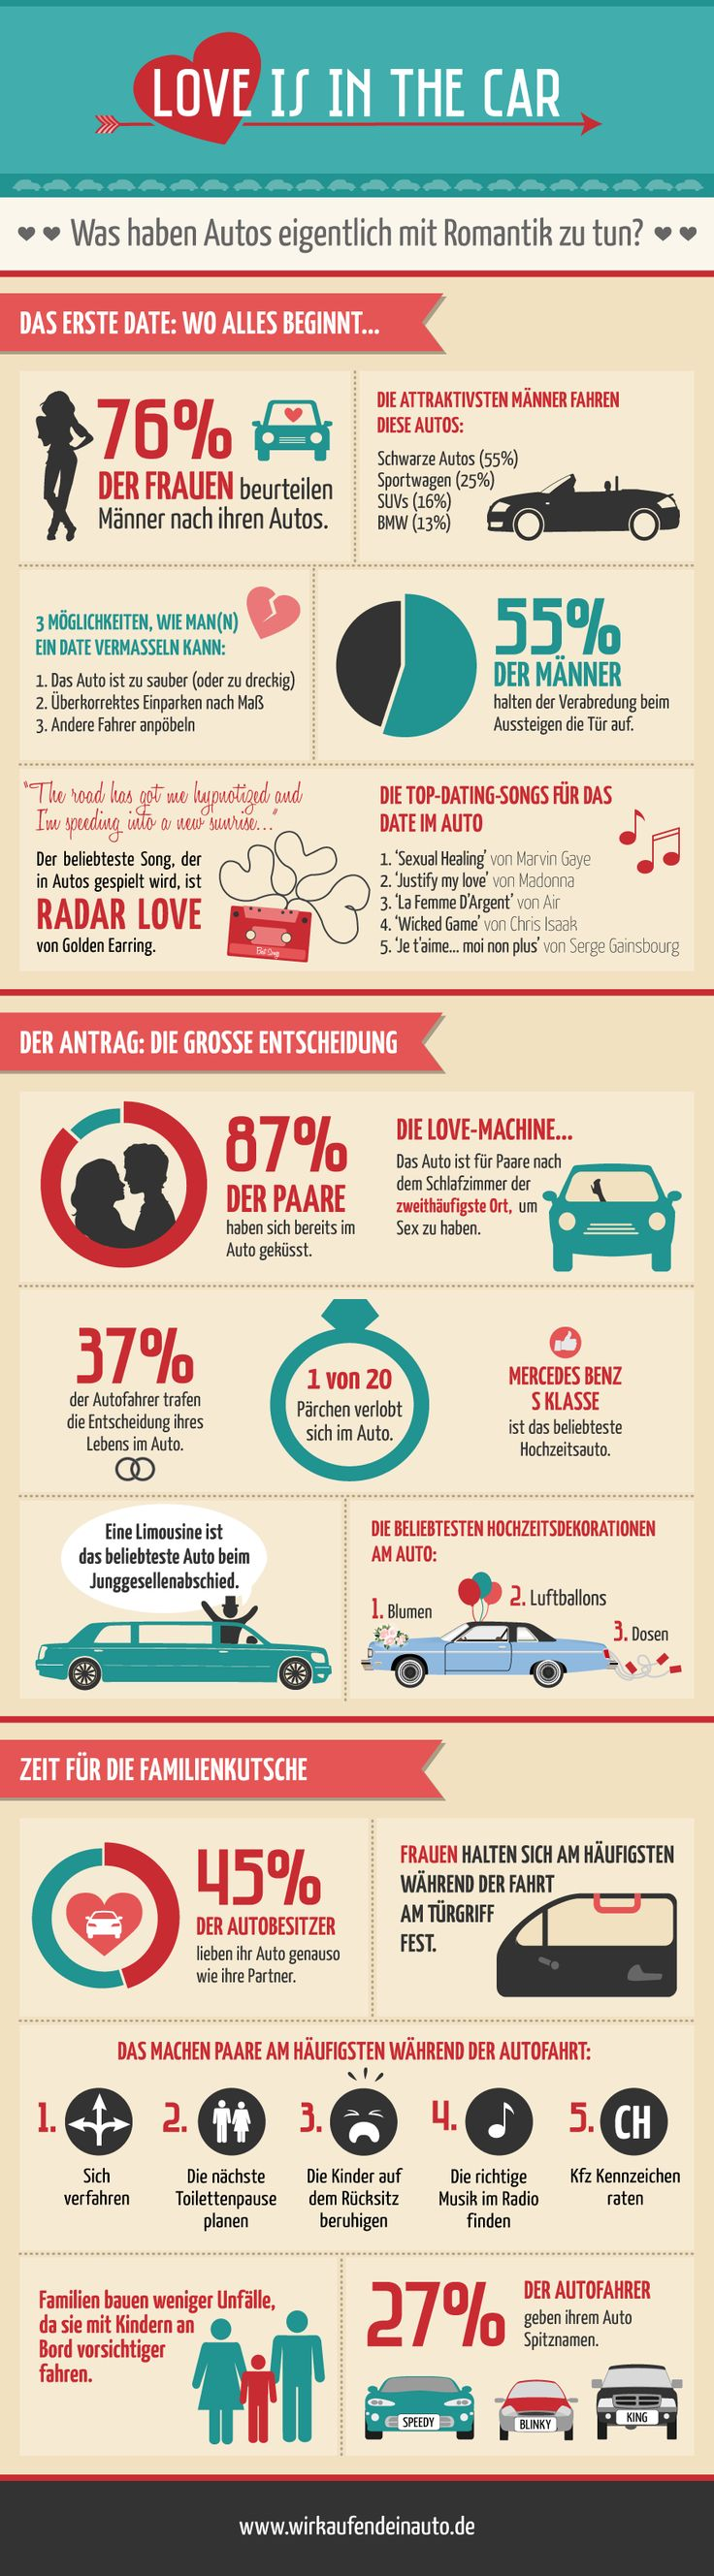 81 best Infographic images on Pinterest | Info graphics, Alcoholic ...